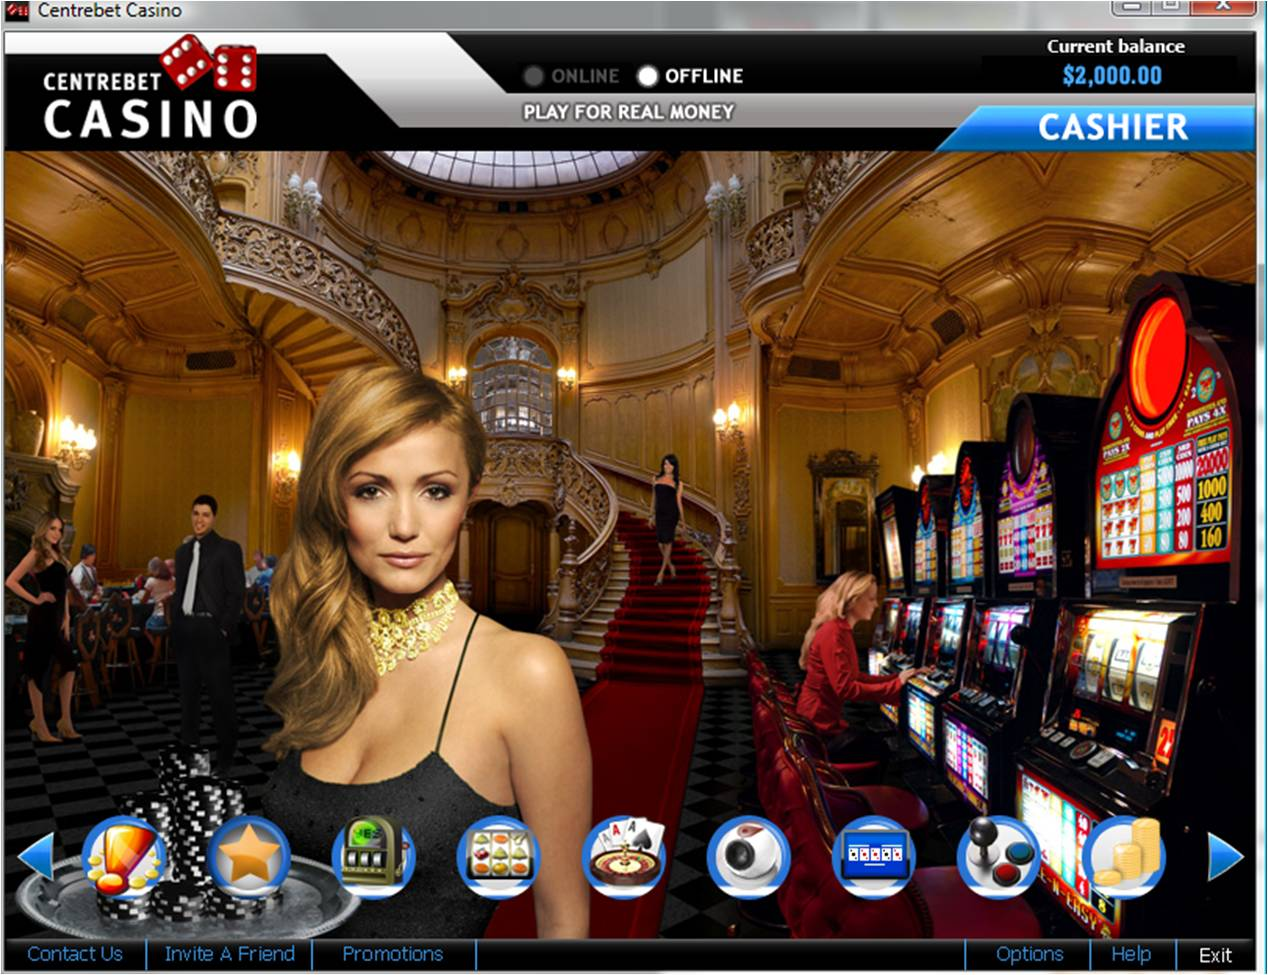 Centrebet casino best online casino website